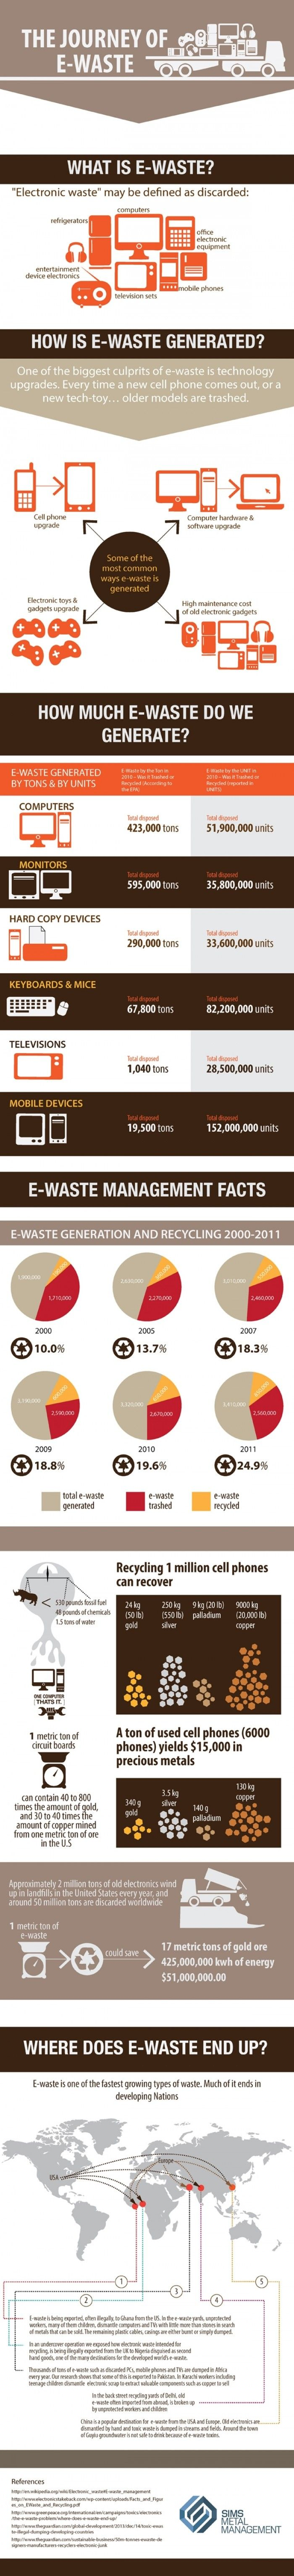 $15,000 of precious metals can be recovered from one ton of recycled e-waste